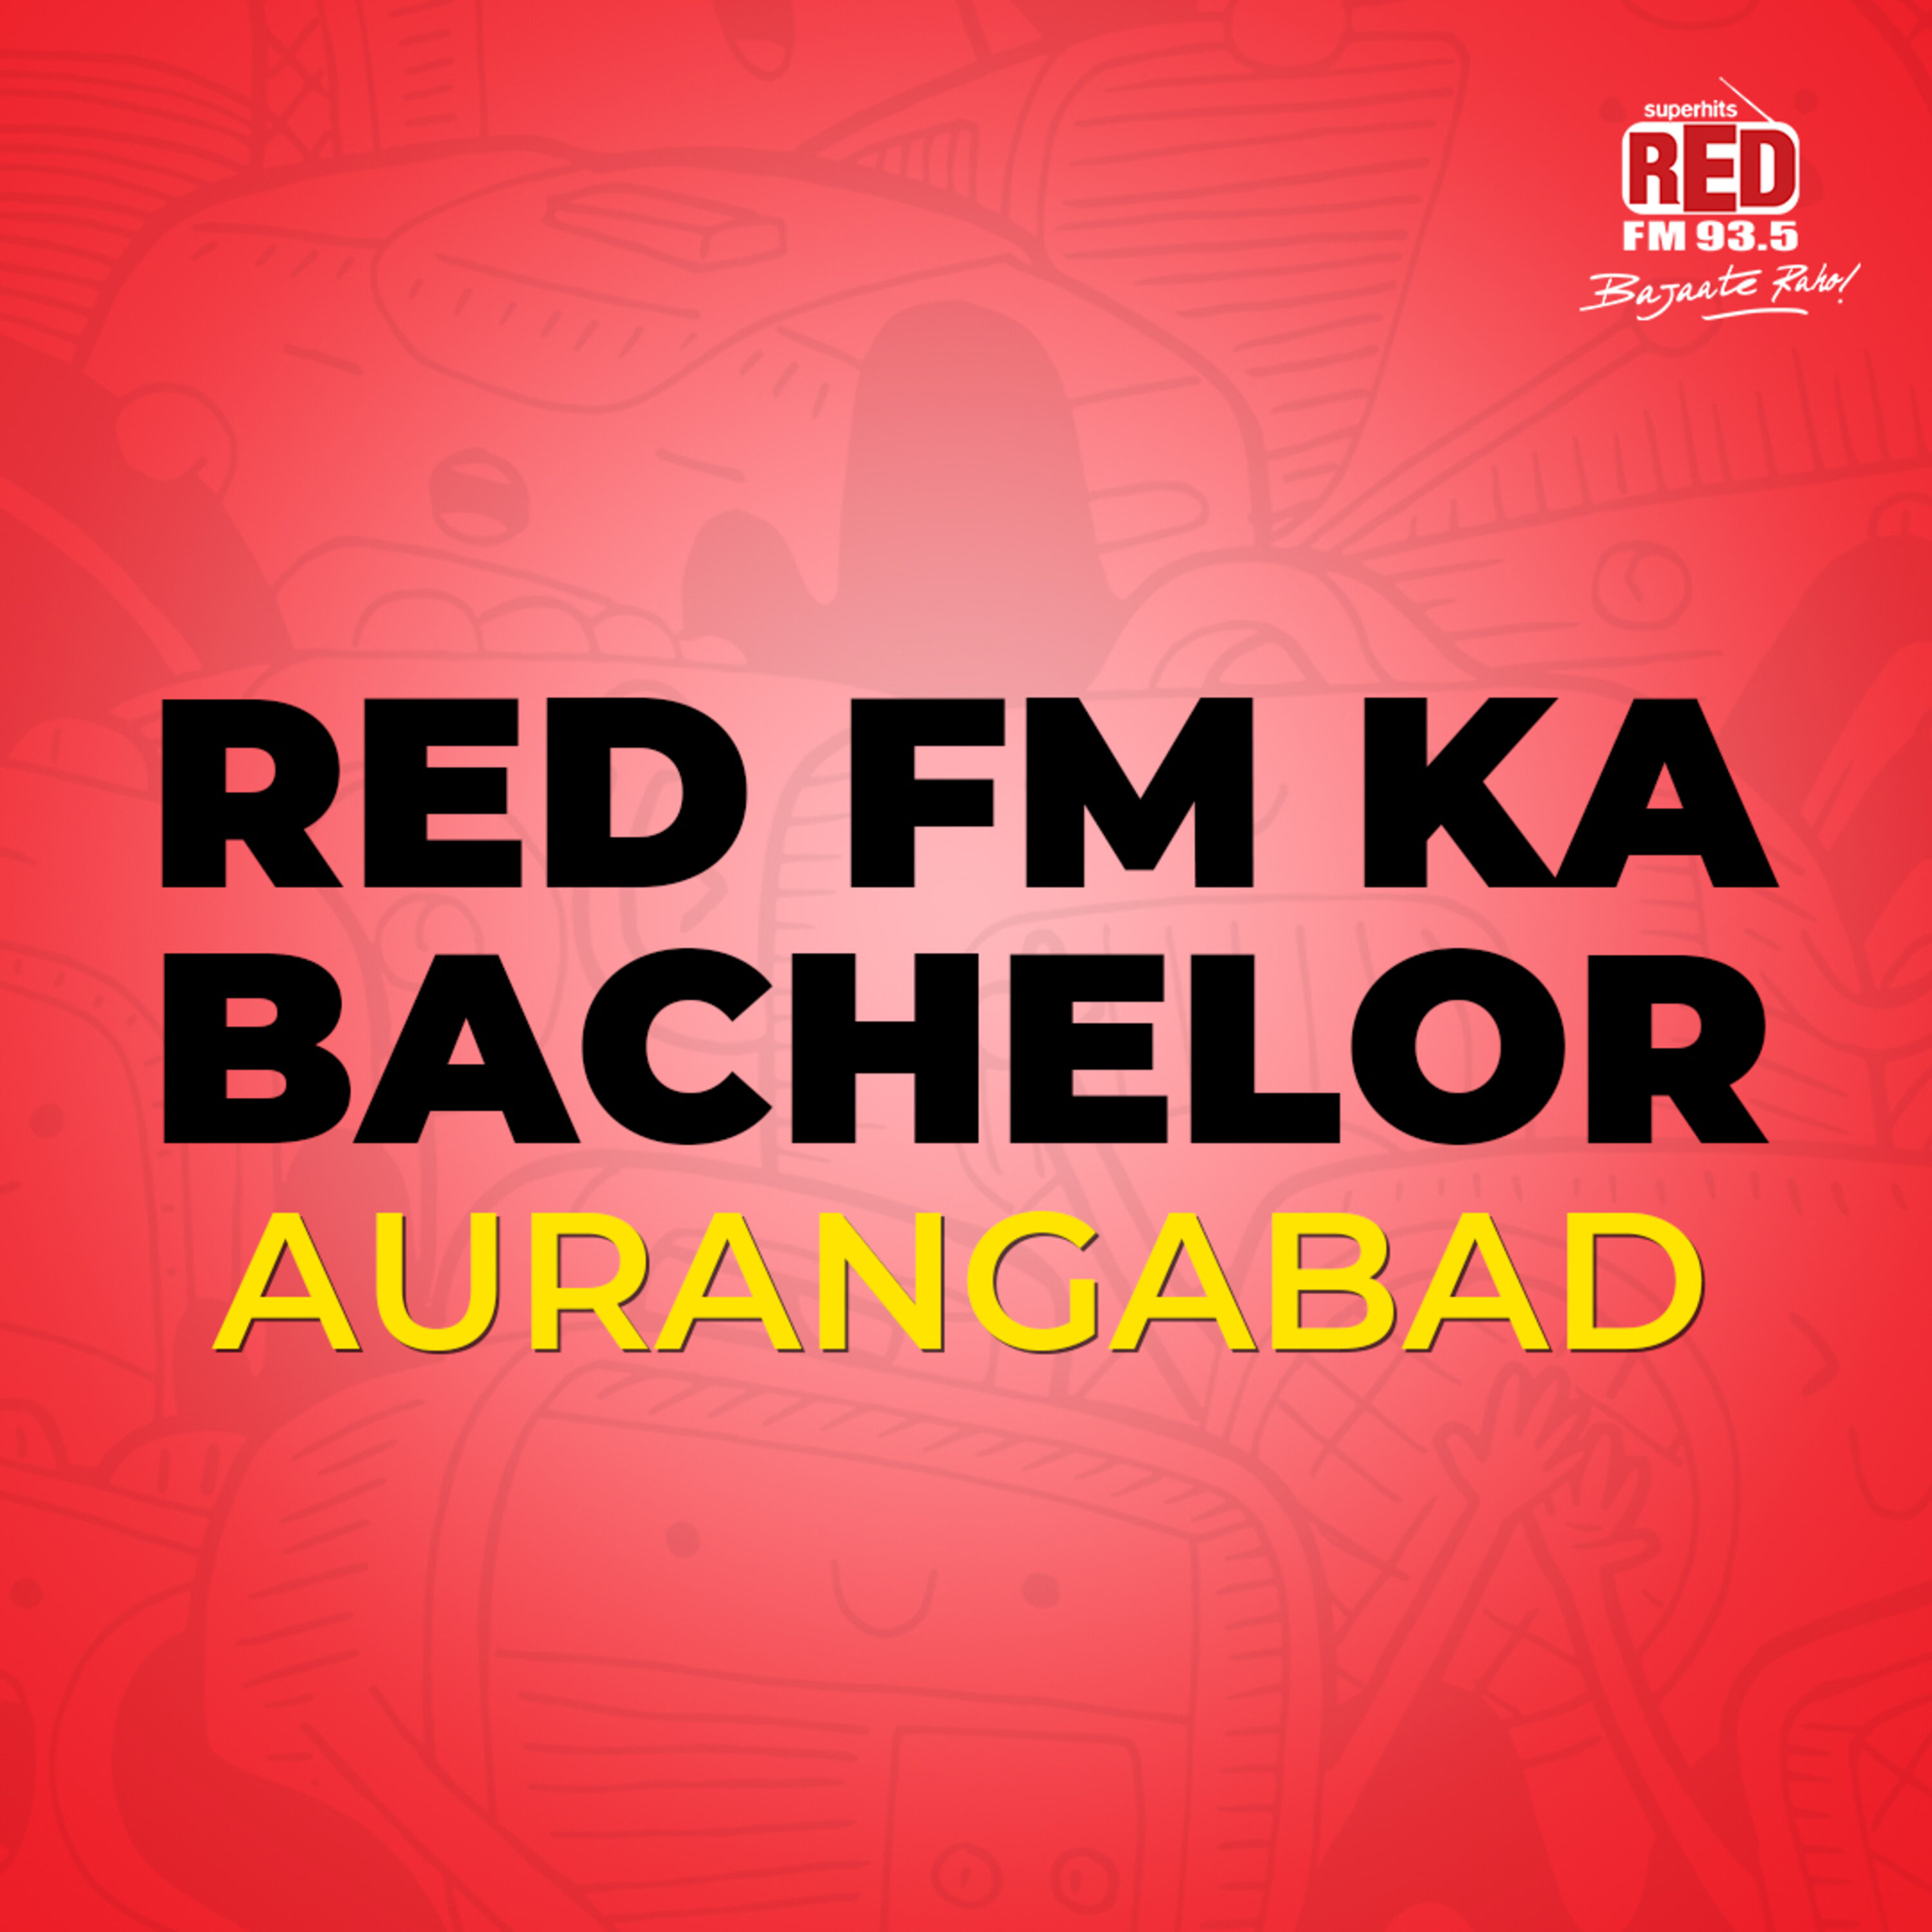 Red FM Ka Bachelor (Aurangabad)